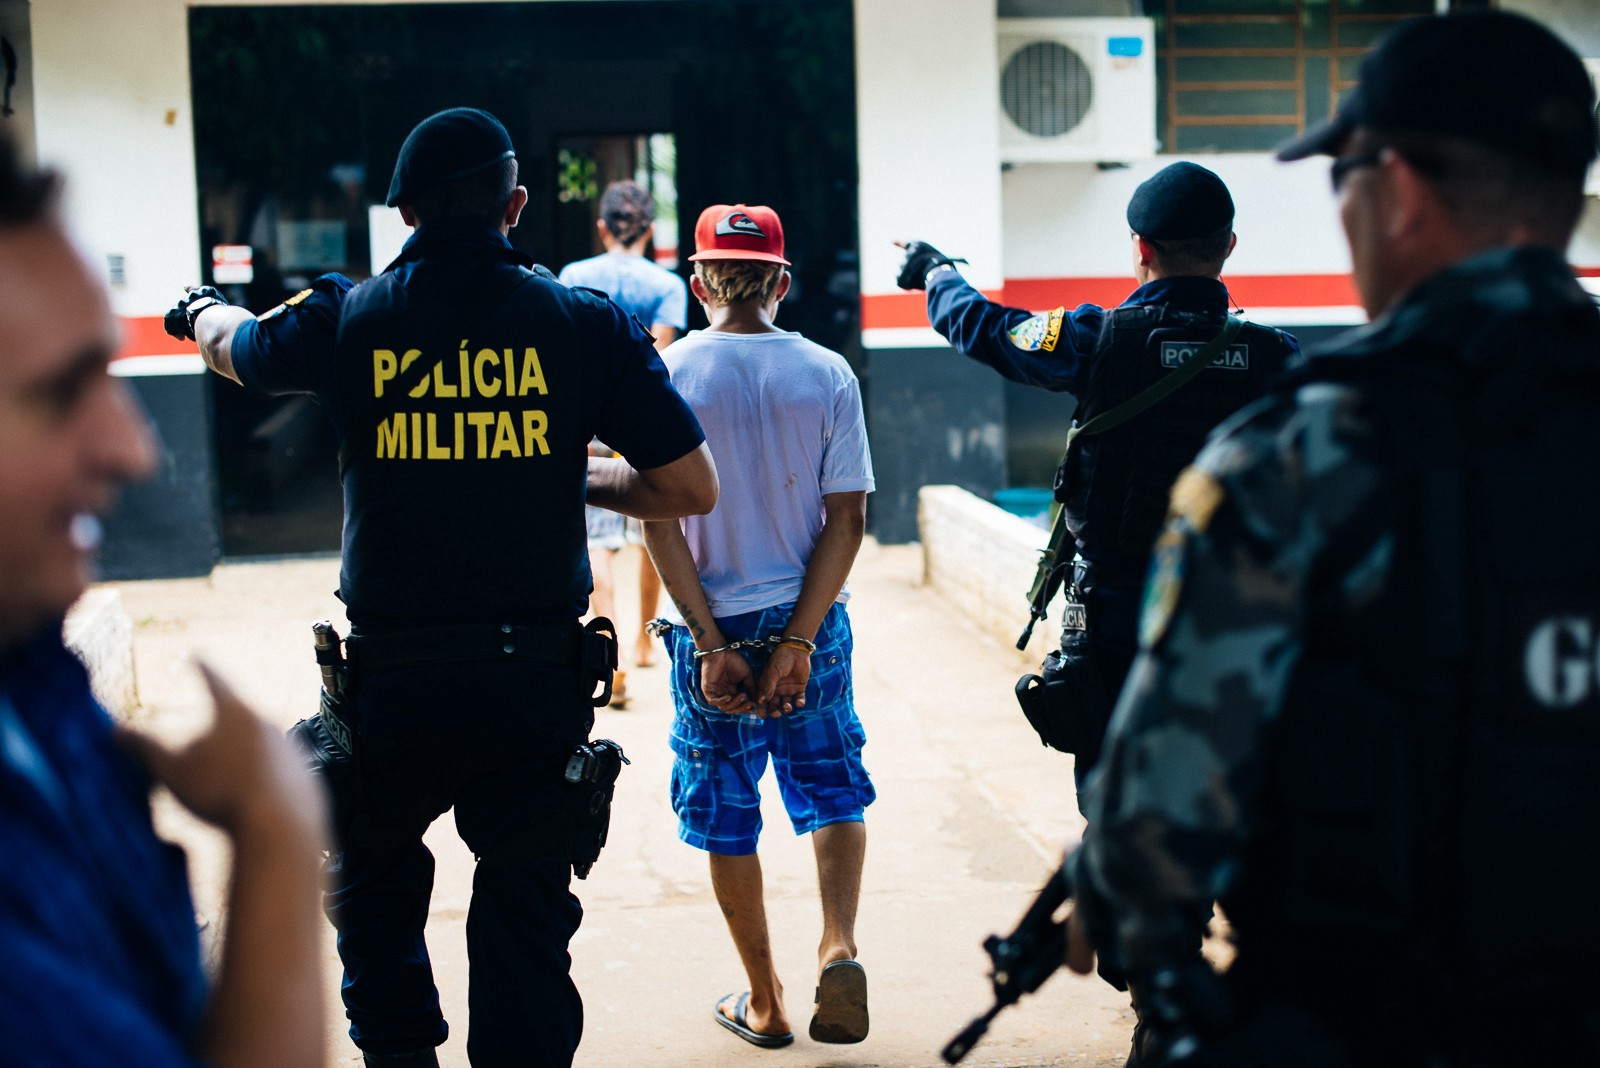 A man is arrested in Brazil